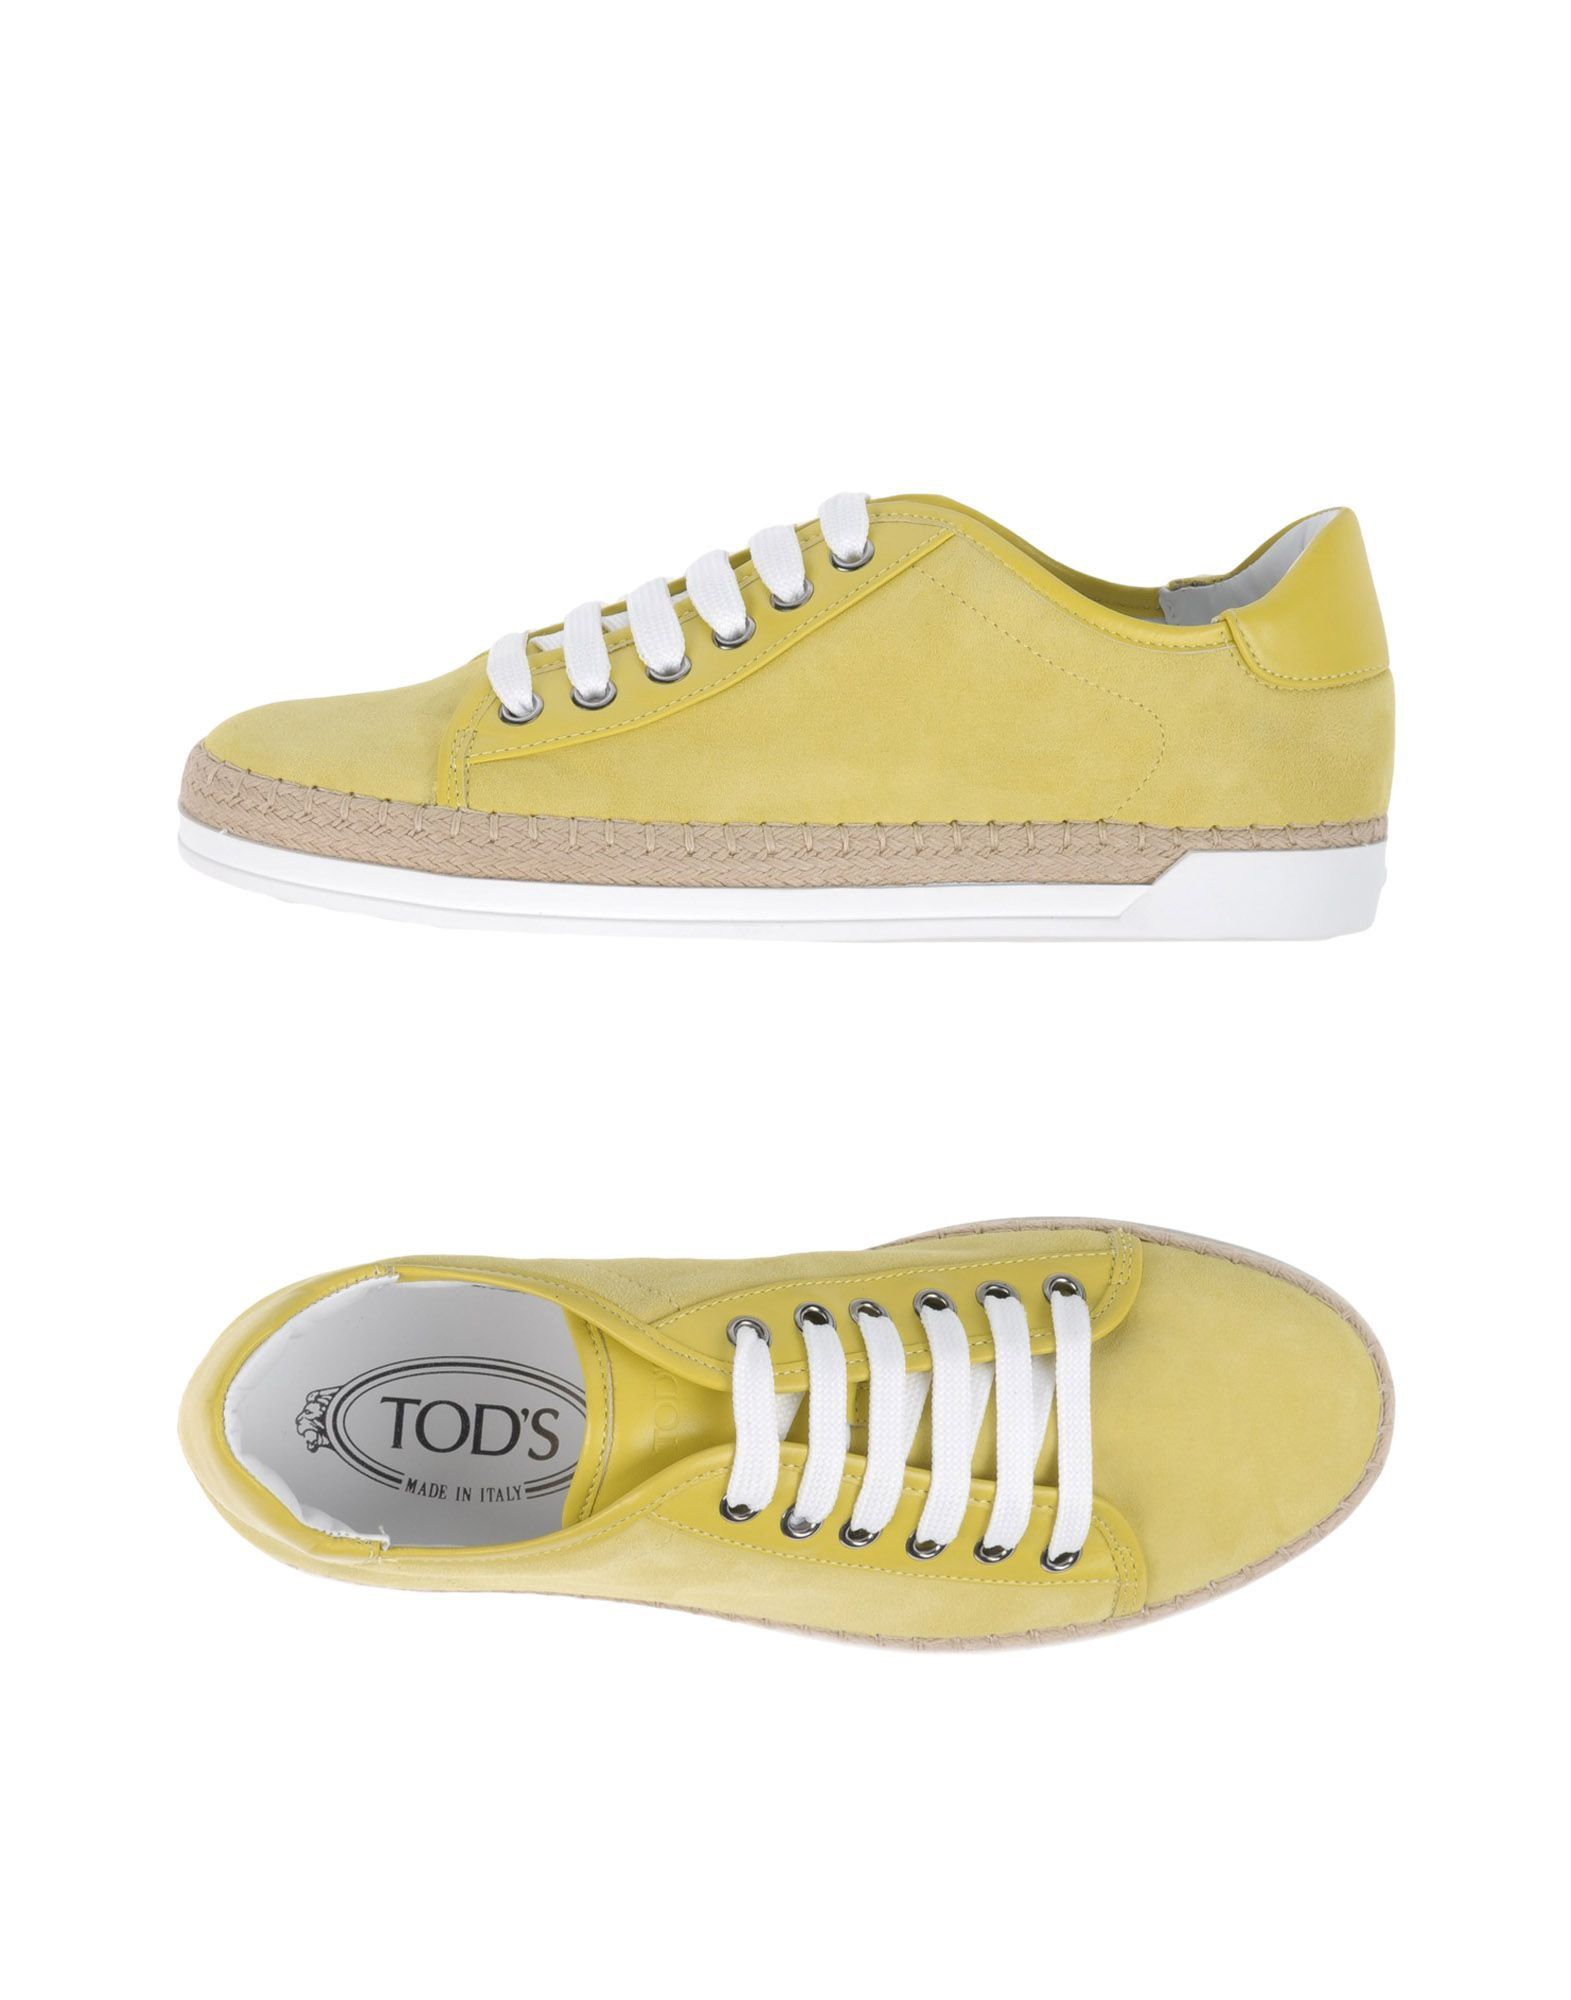 TOD'S Low-tops & sneakers. #tods #shoes #all